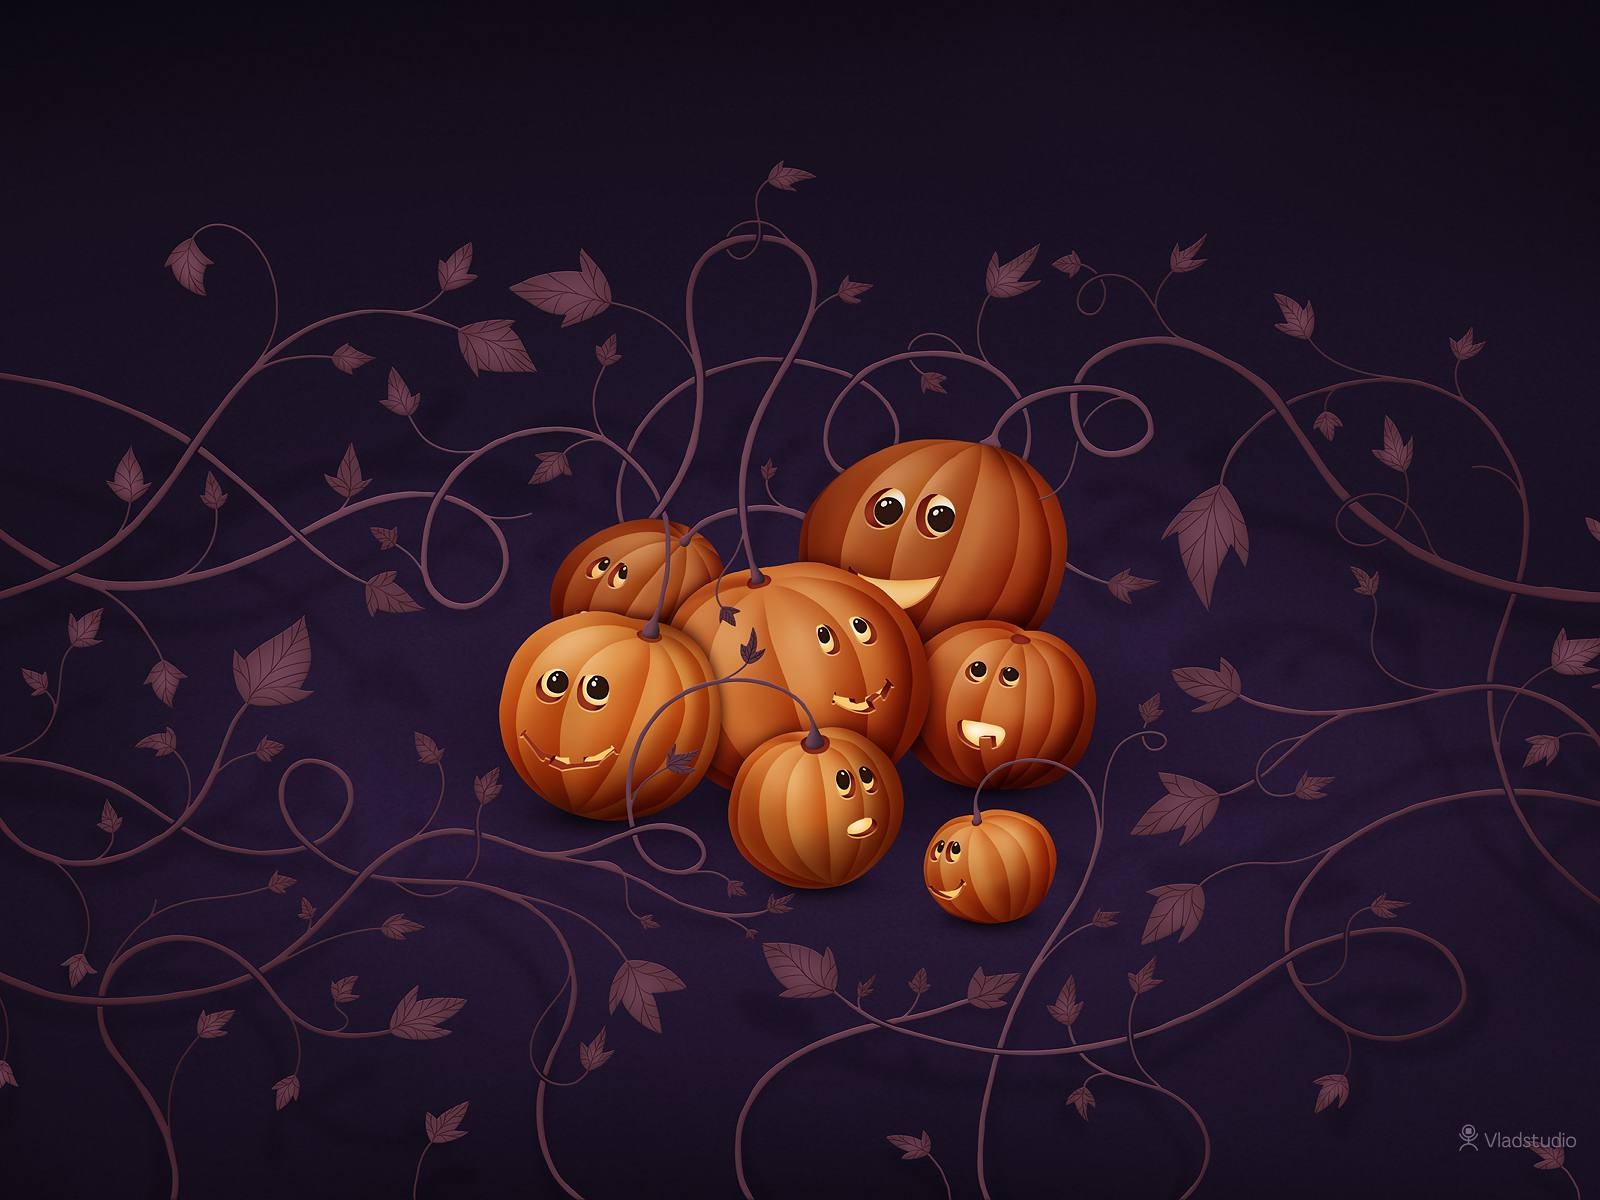 A group of pumpkins growing on vines.